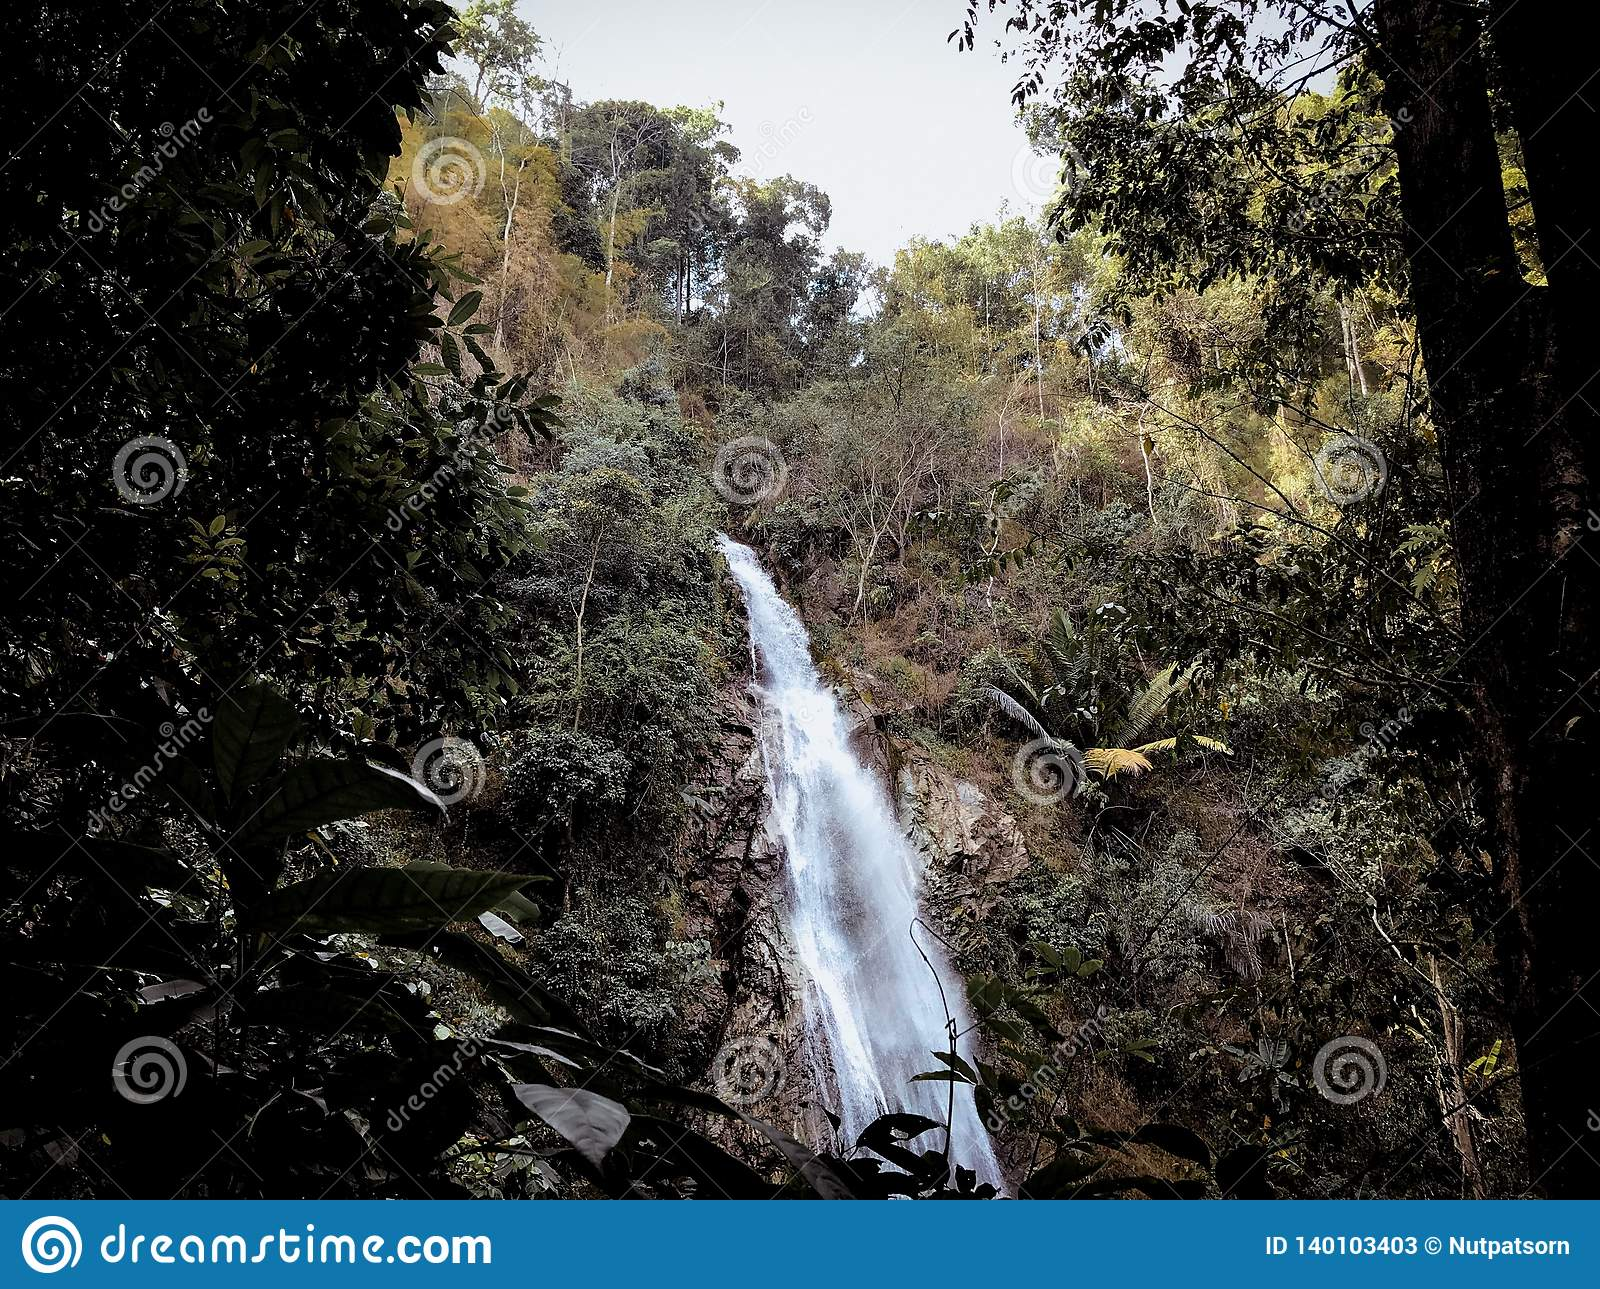 Bosparkwaterval